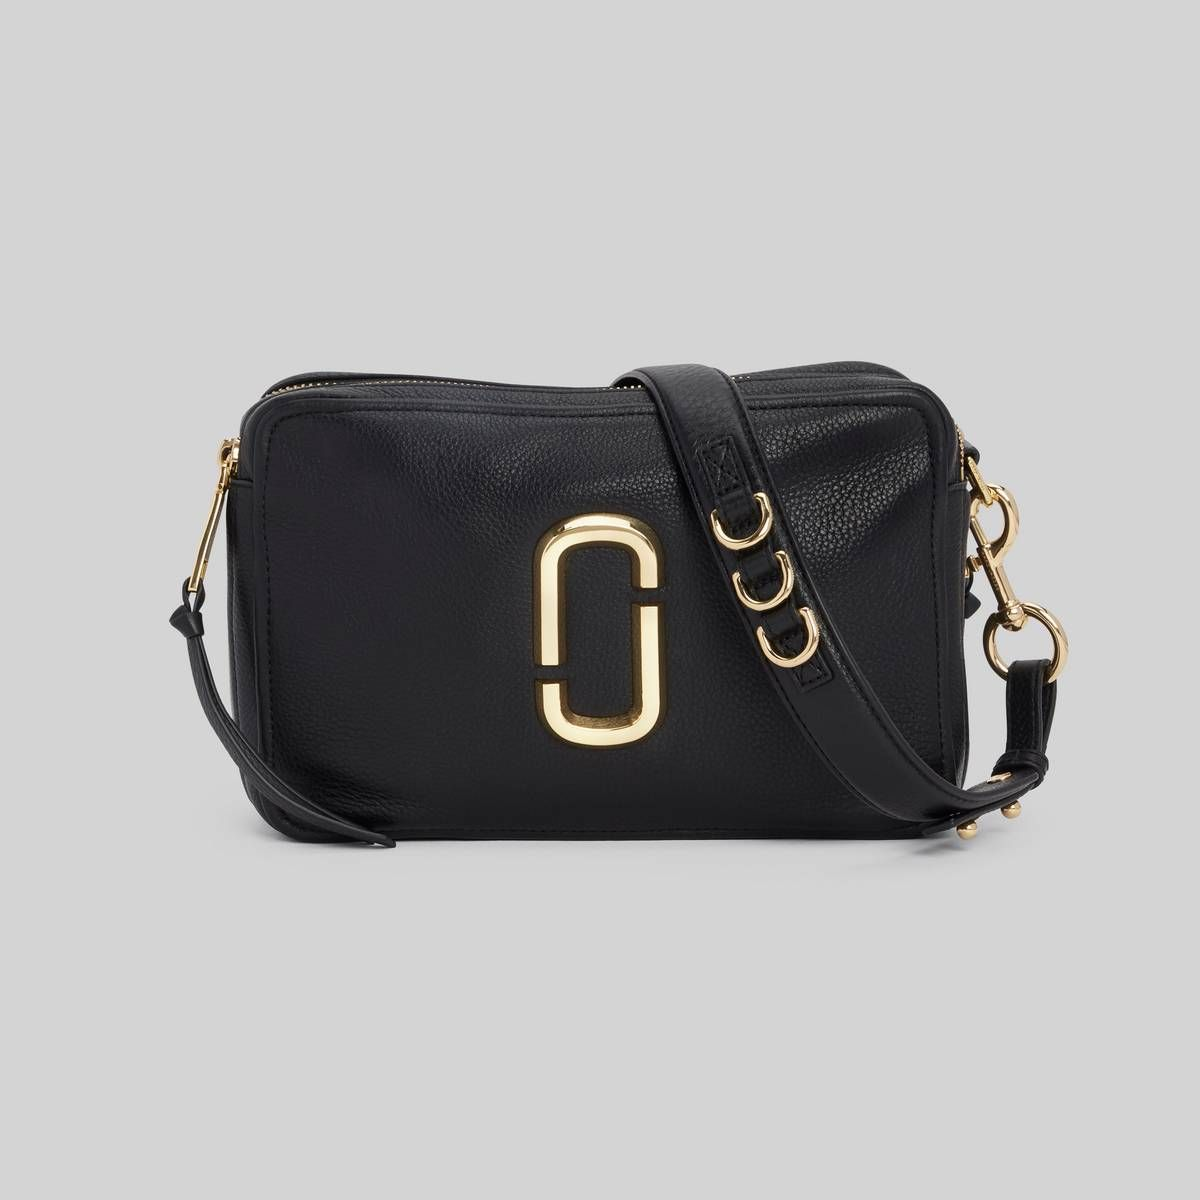 MARC JACOBS Women's The Softshot 27 Bag in Black   Marc jacobs ...